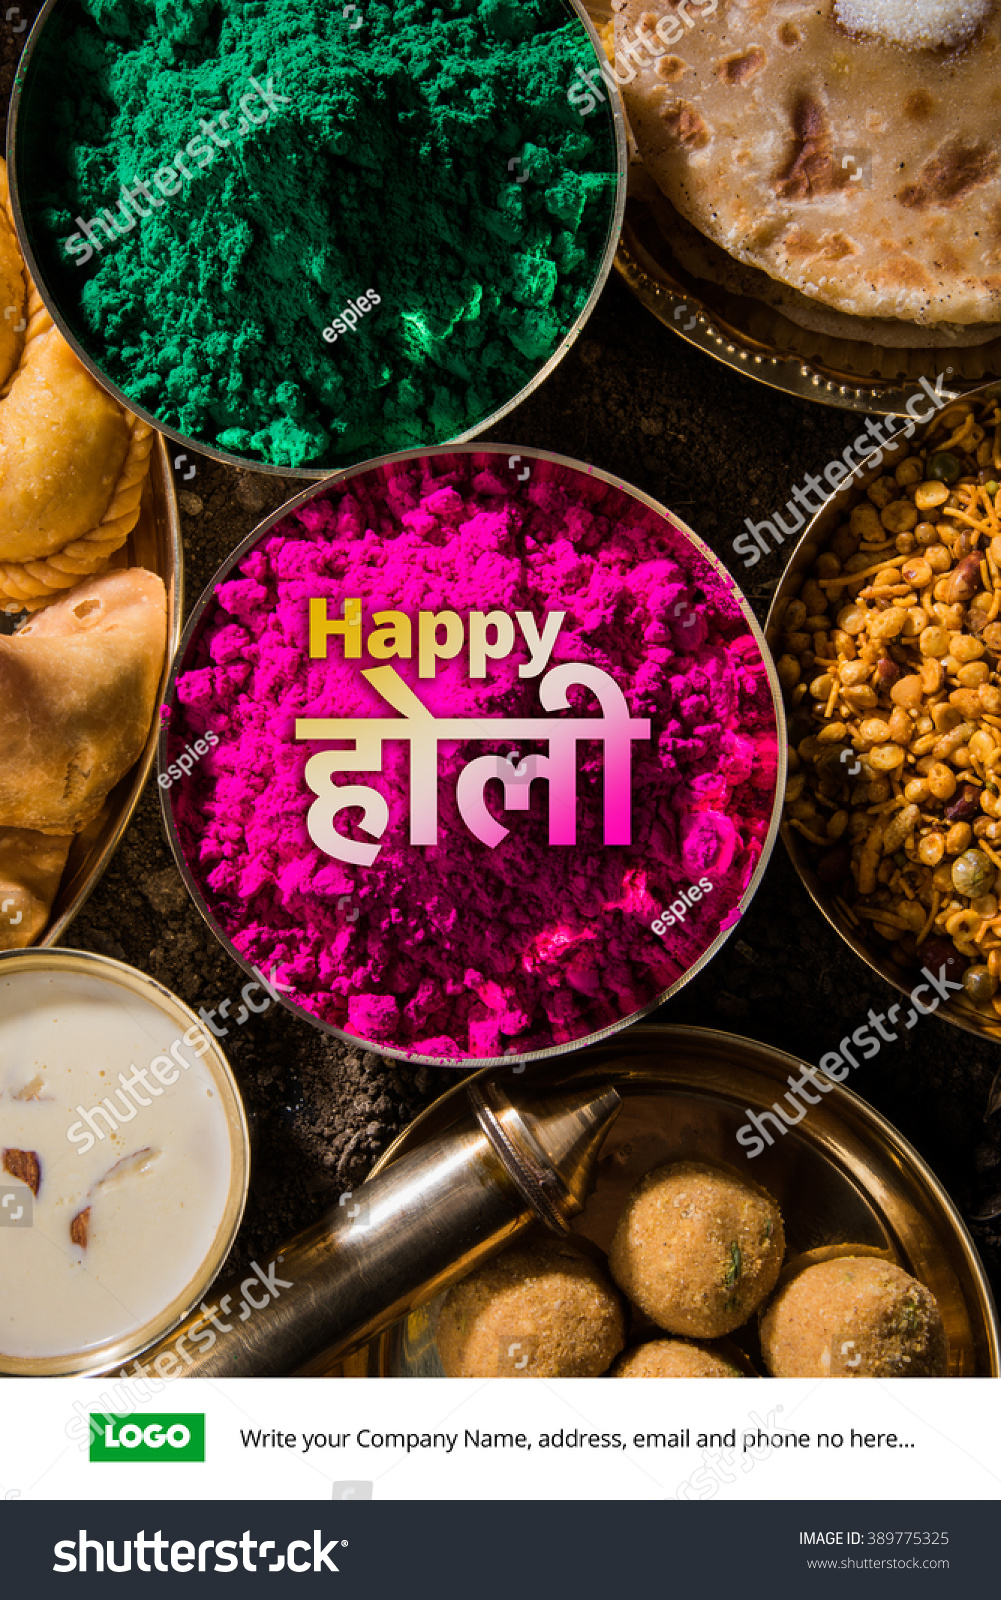 Happy holi greeting card designed showing stock photo royalty free happy holi greeting card designed showing indian traditional sweet and salty food flowers and powder forumfinder Images